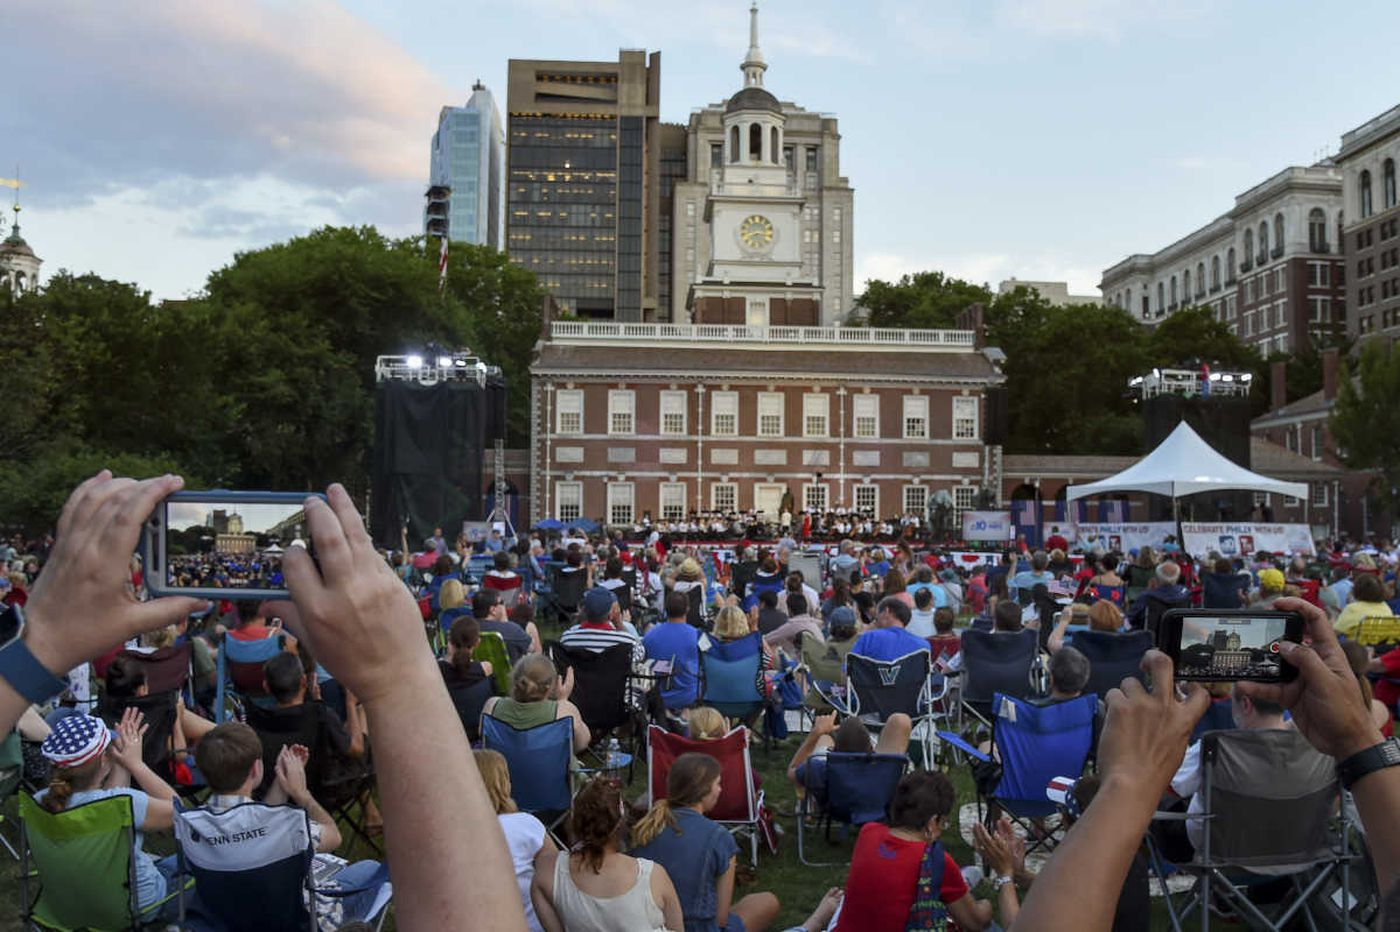 Independence Hall is not falling down, but it needs our support